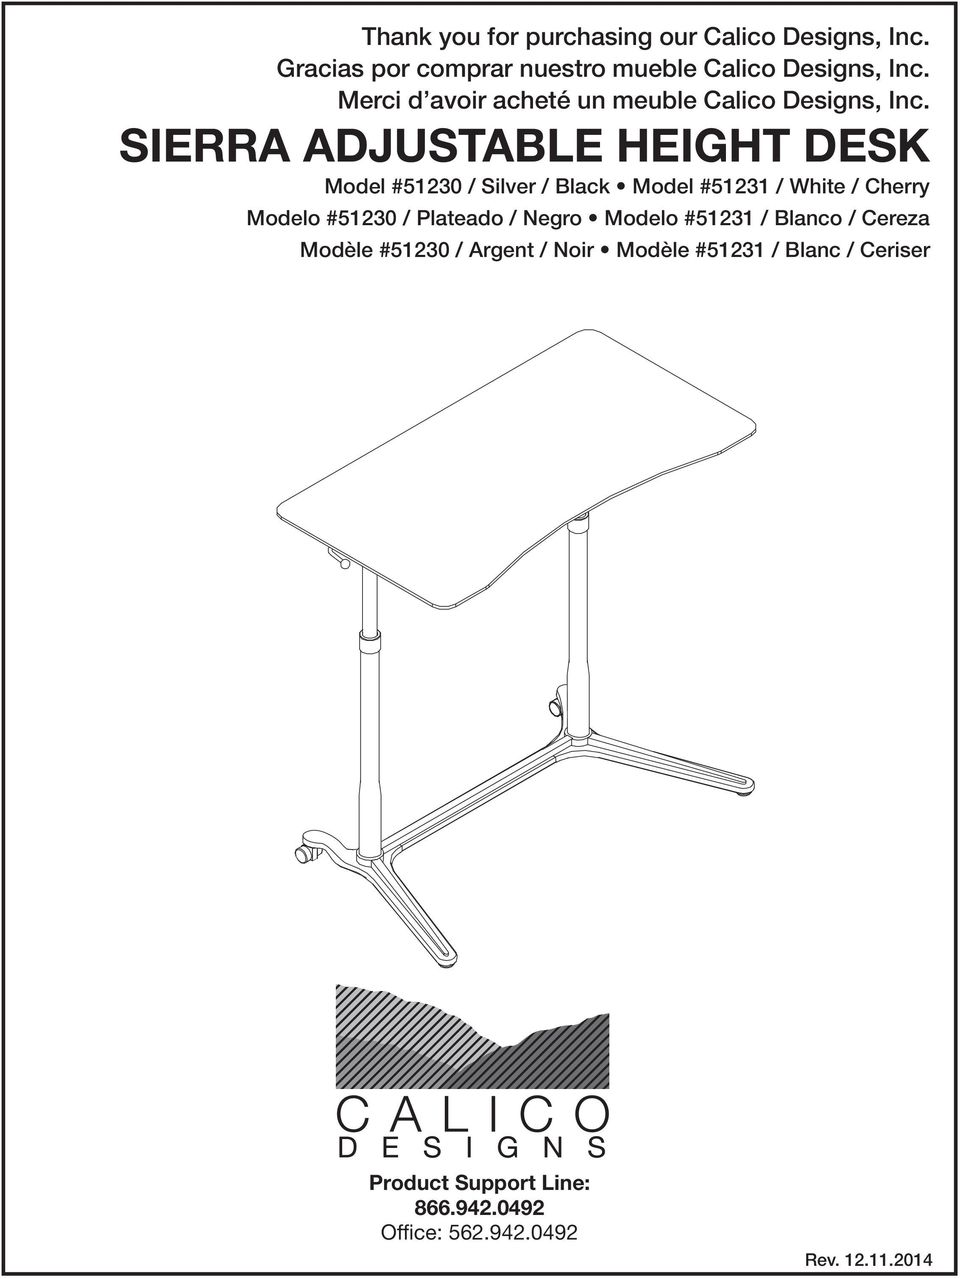 SIERRA ADJUSTABLE HEIGHT DESK Model #530 / Silver / Black Model #53 / White / Cherry Modelo #530 /